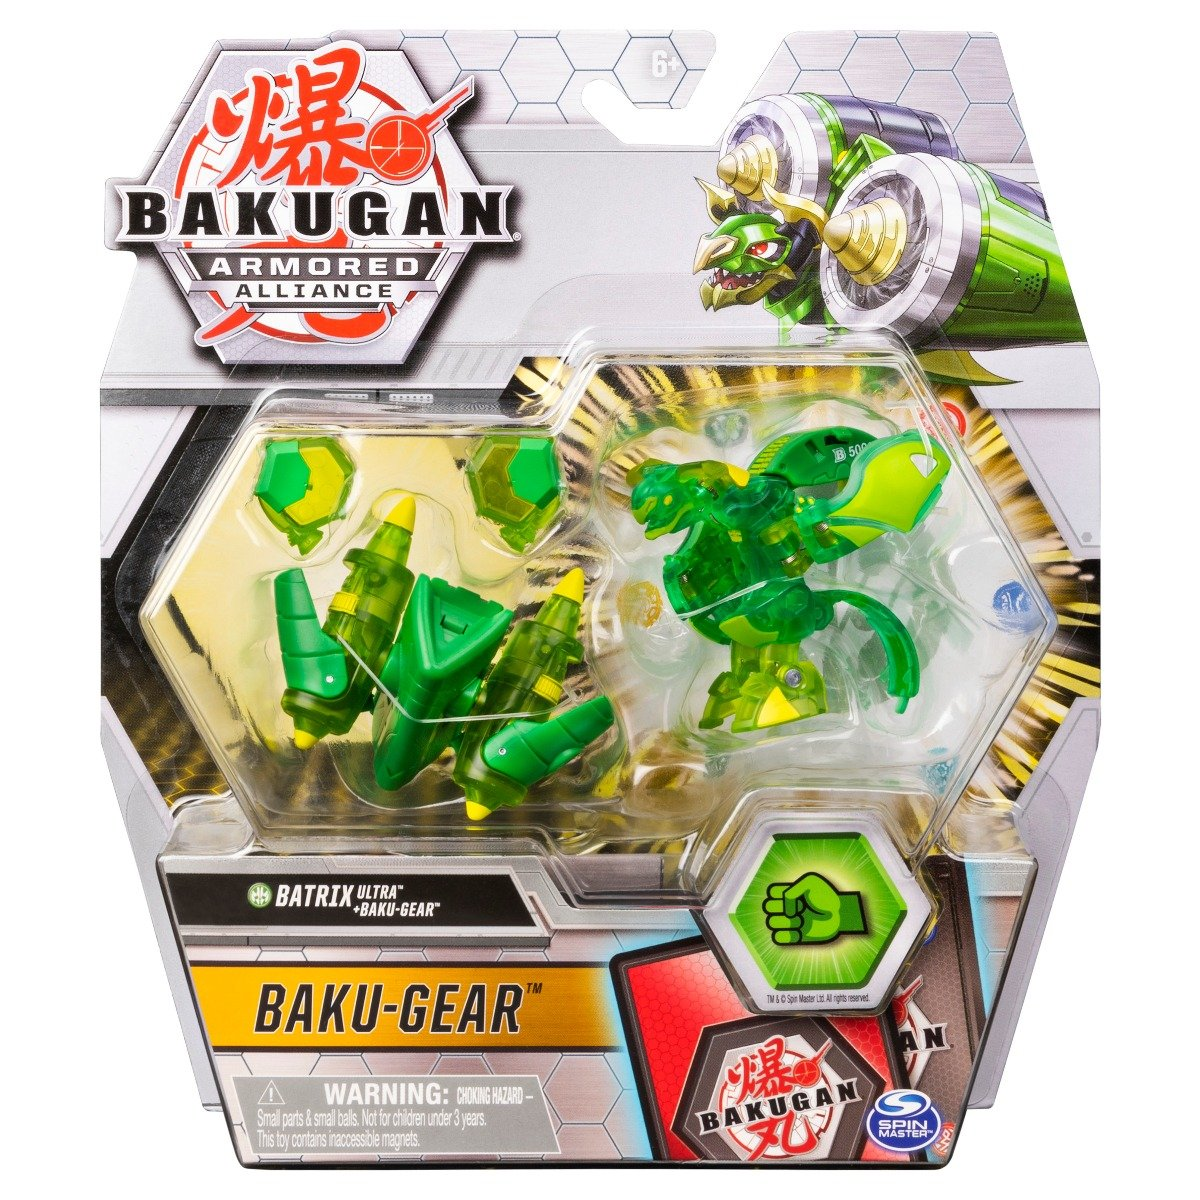 Figurina Bakugan Armored Alliance, Batrix Ultra, Baku-Gear 20124271